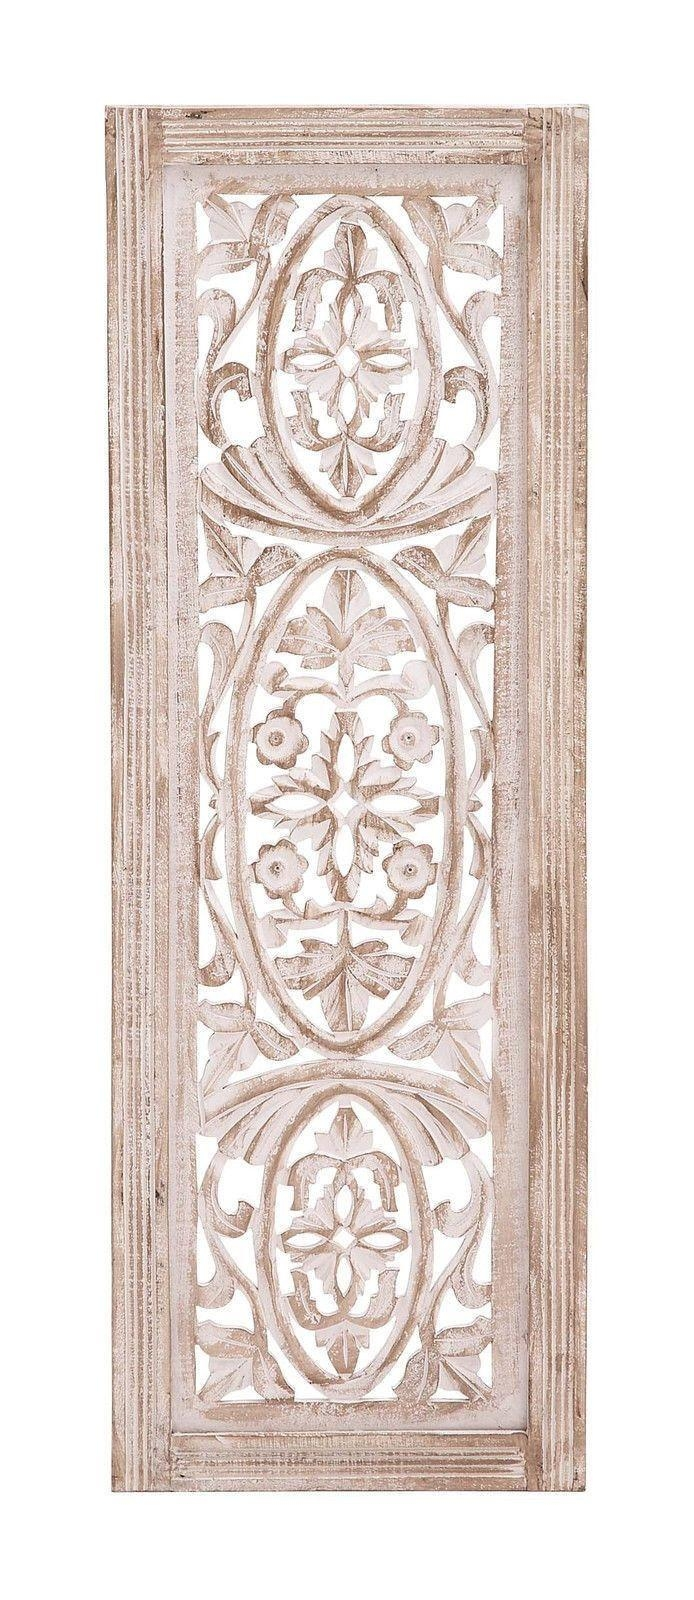 Top 25+ Best Carved Wood Wall Art Ideas On Pinterest | Thai Decor Throughout White Wooden Wall Art (Image 13 of 20)